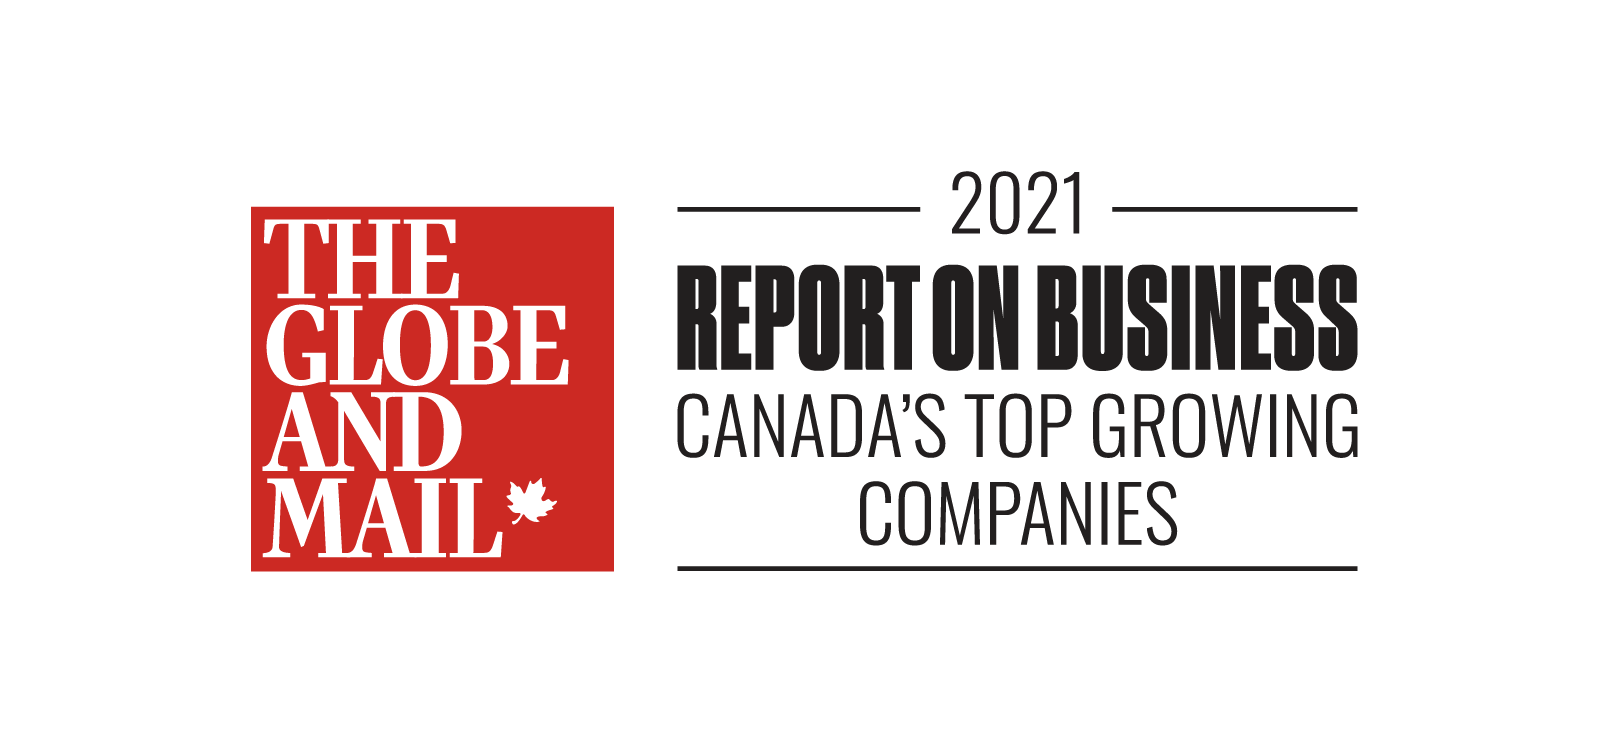 Globe and Mail 2021 Report on Business Canada's Top Growing Companies